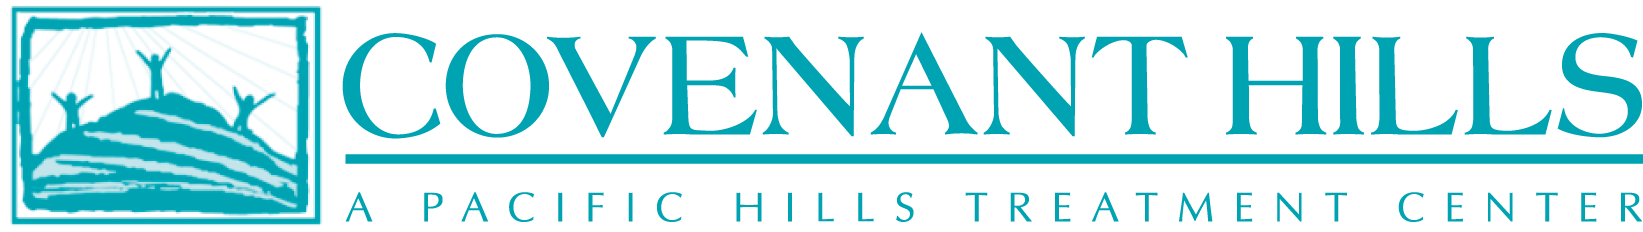 Covenant Hills Addiction Treatment Center